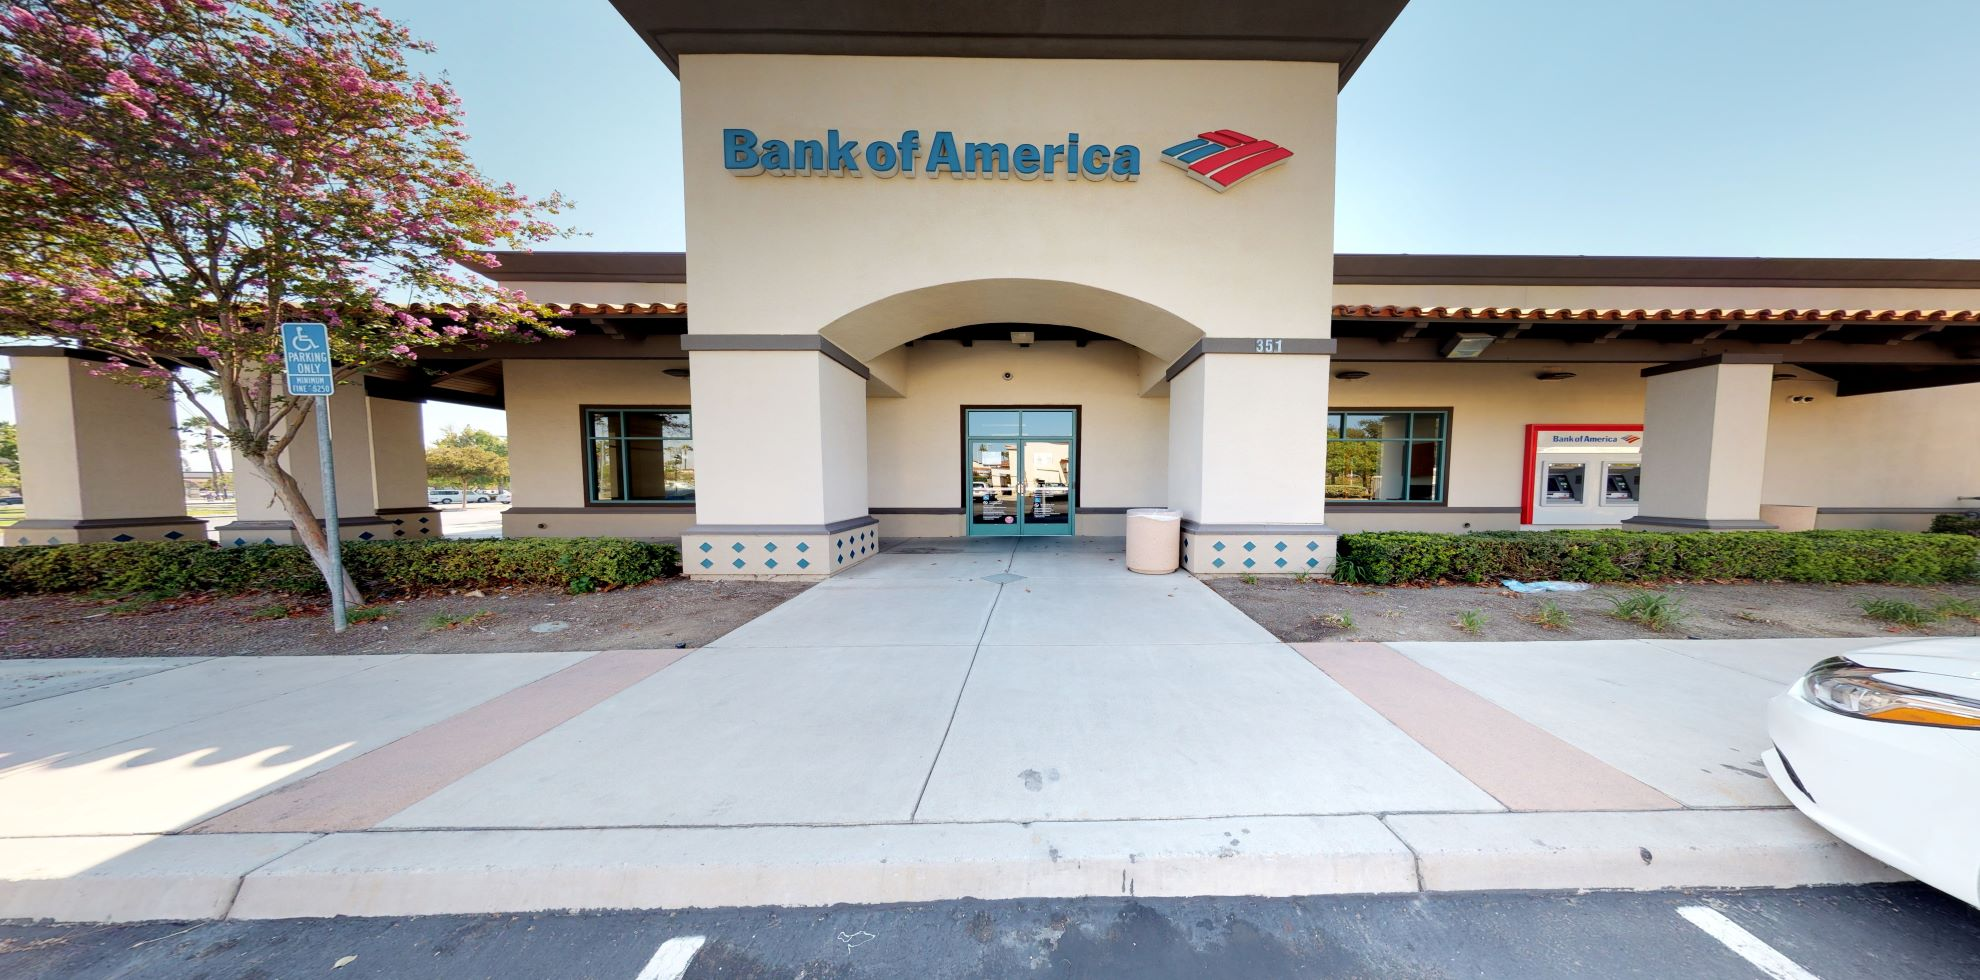 Bank of America financial center with walk-up ATM   351 E Alessandro Blvd, Riverside, CA 92508